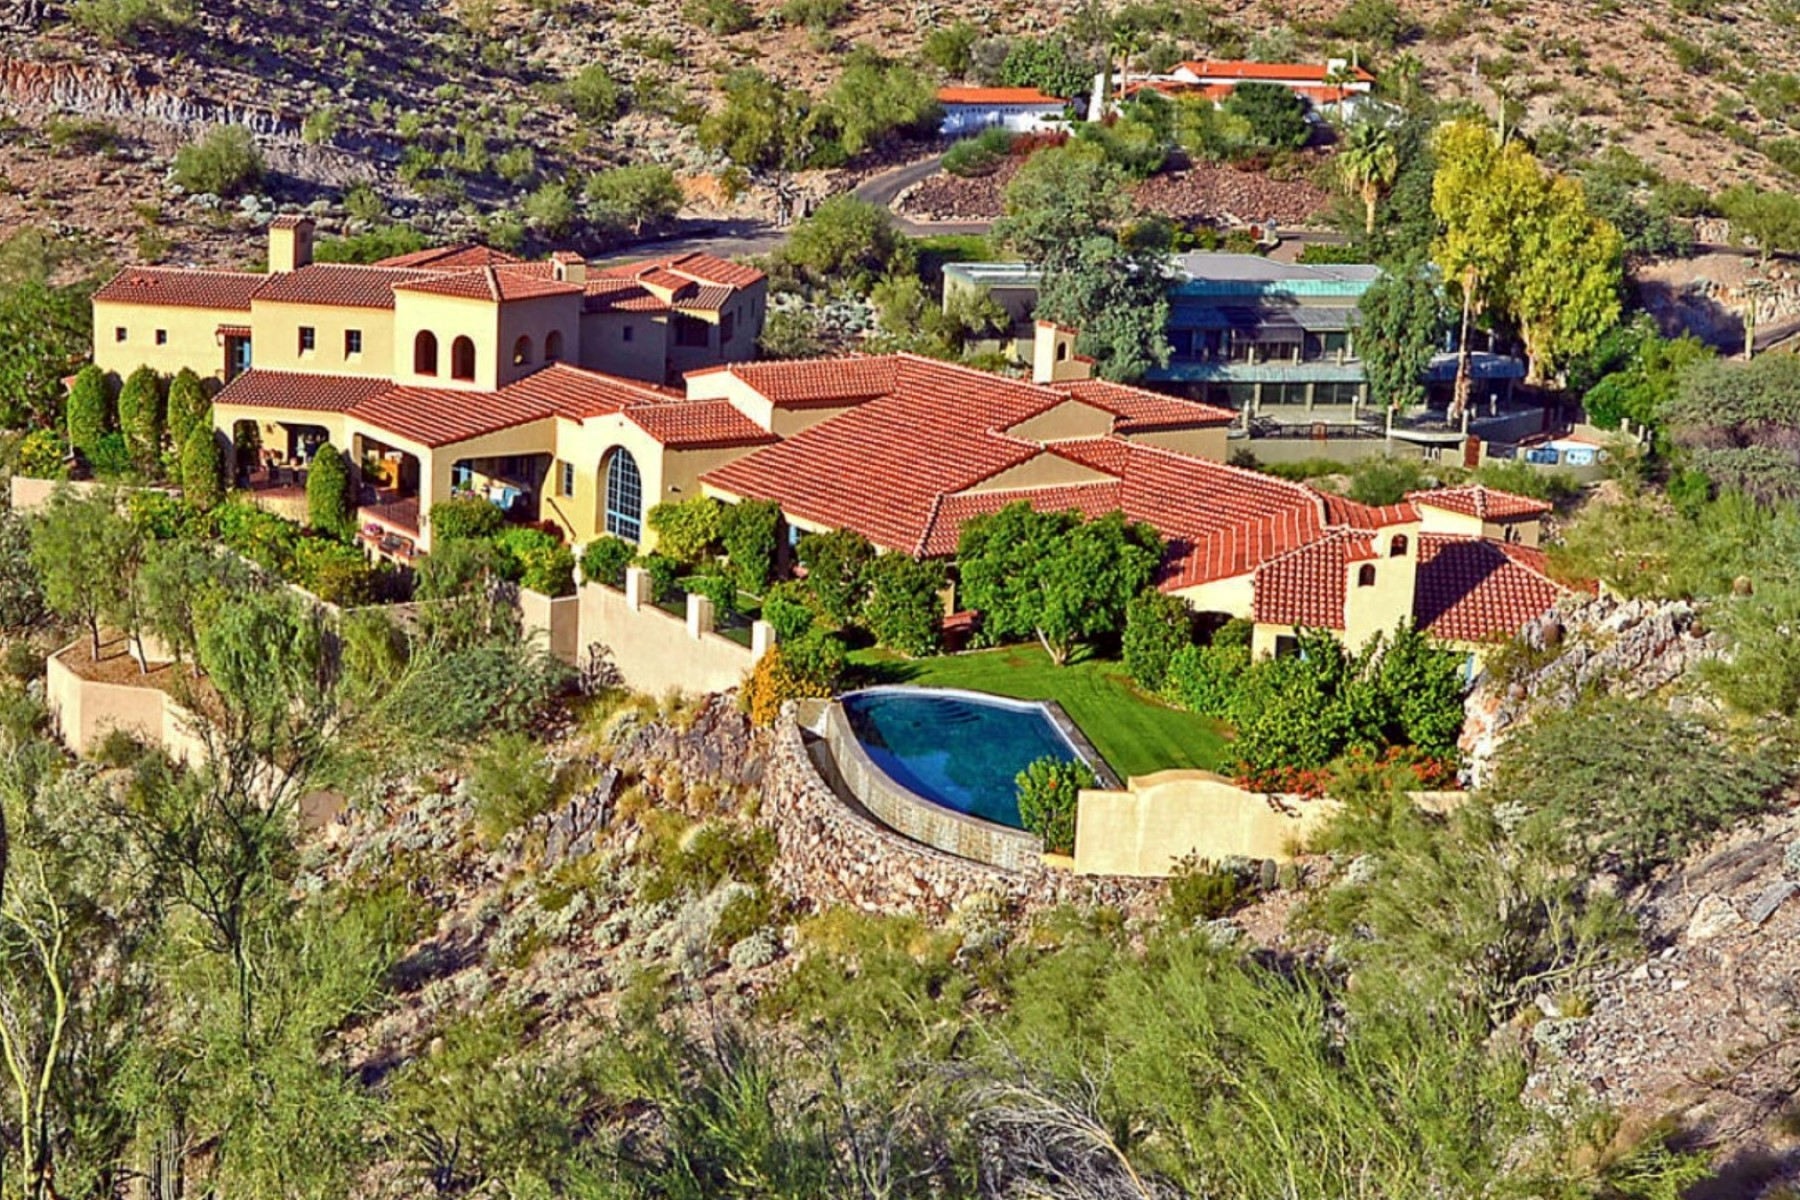 Property For Sale at Spectacular Spanish Colonial Revival Styled Estate Home In Paradise Valley